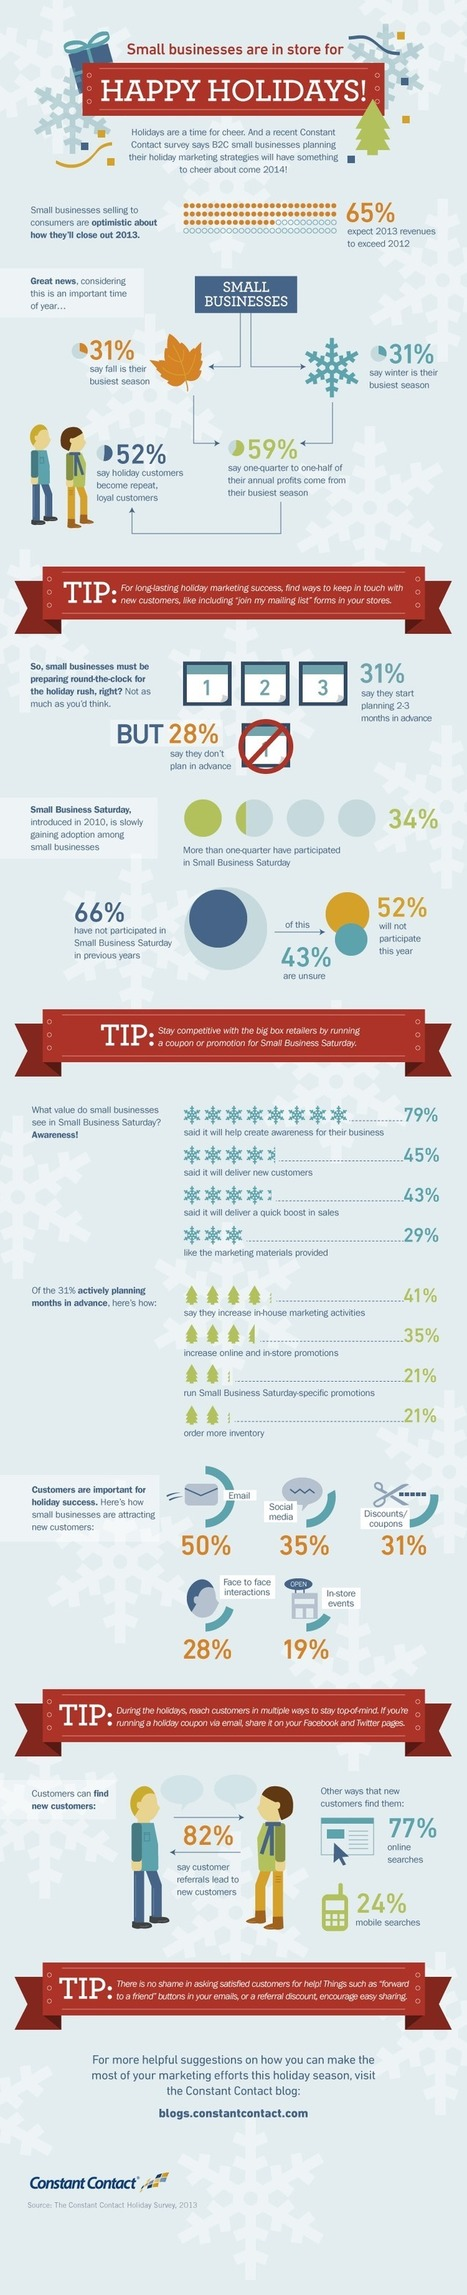 Small Businesses Are In Store For Happy Holidays!  #infographic | MarketingHits | Scoop.it